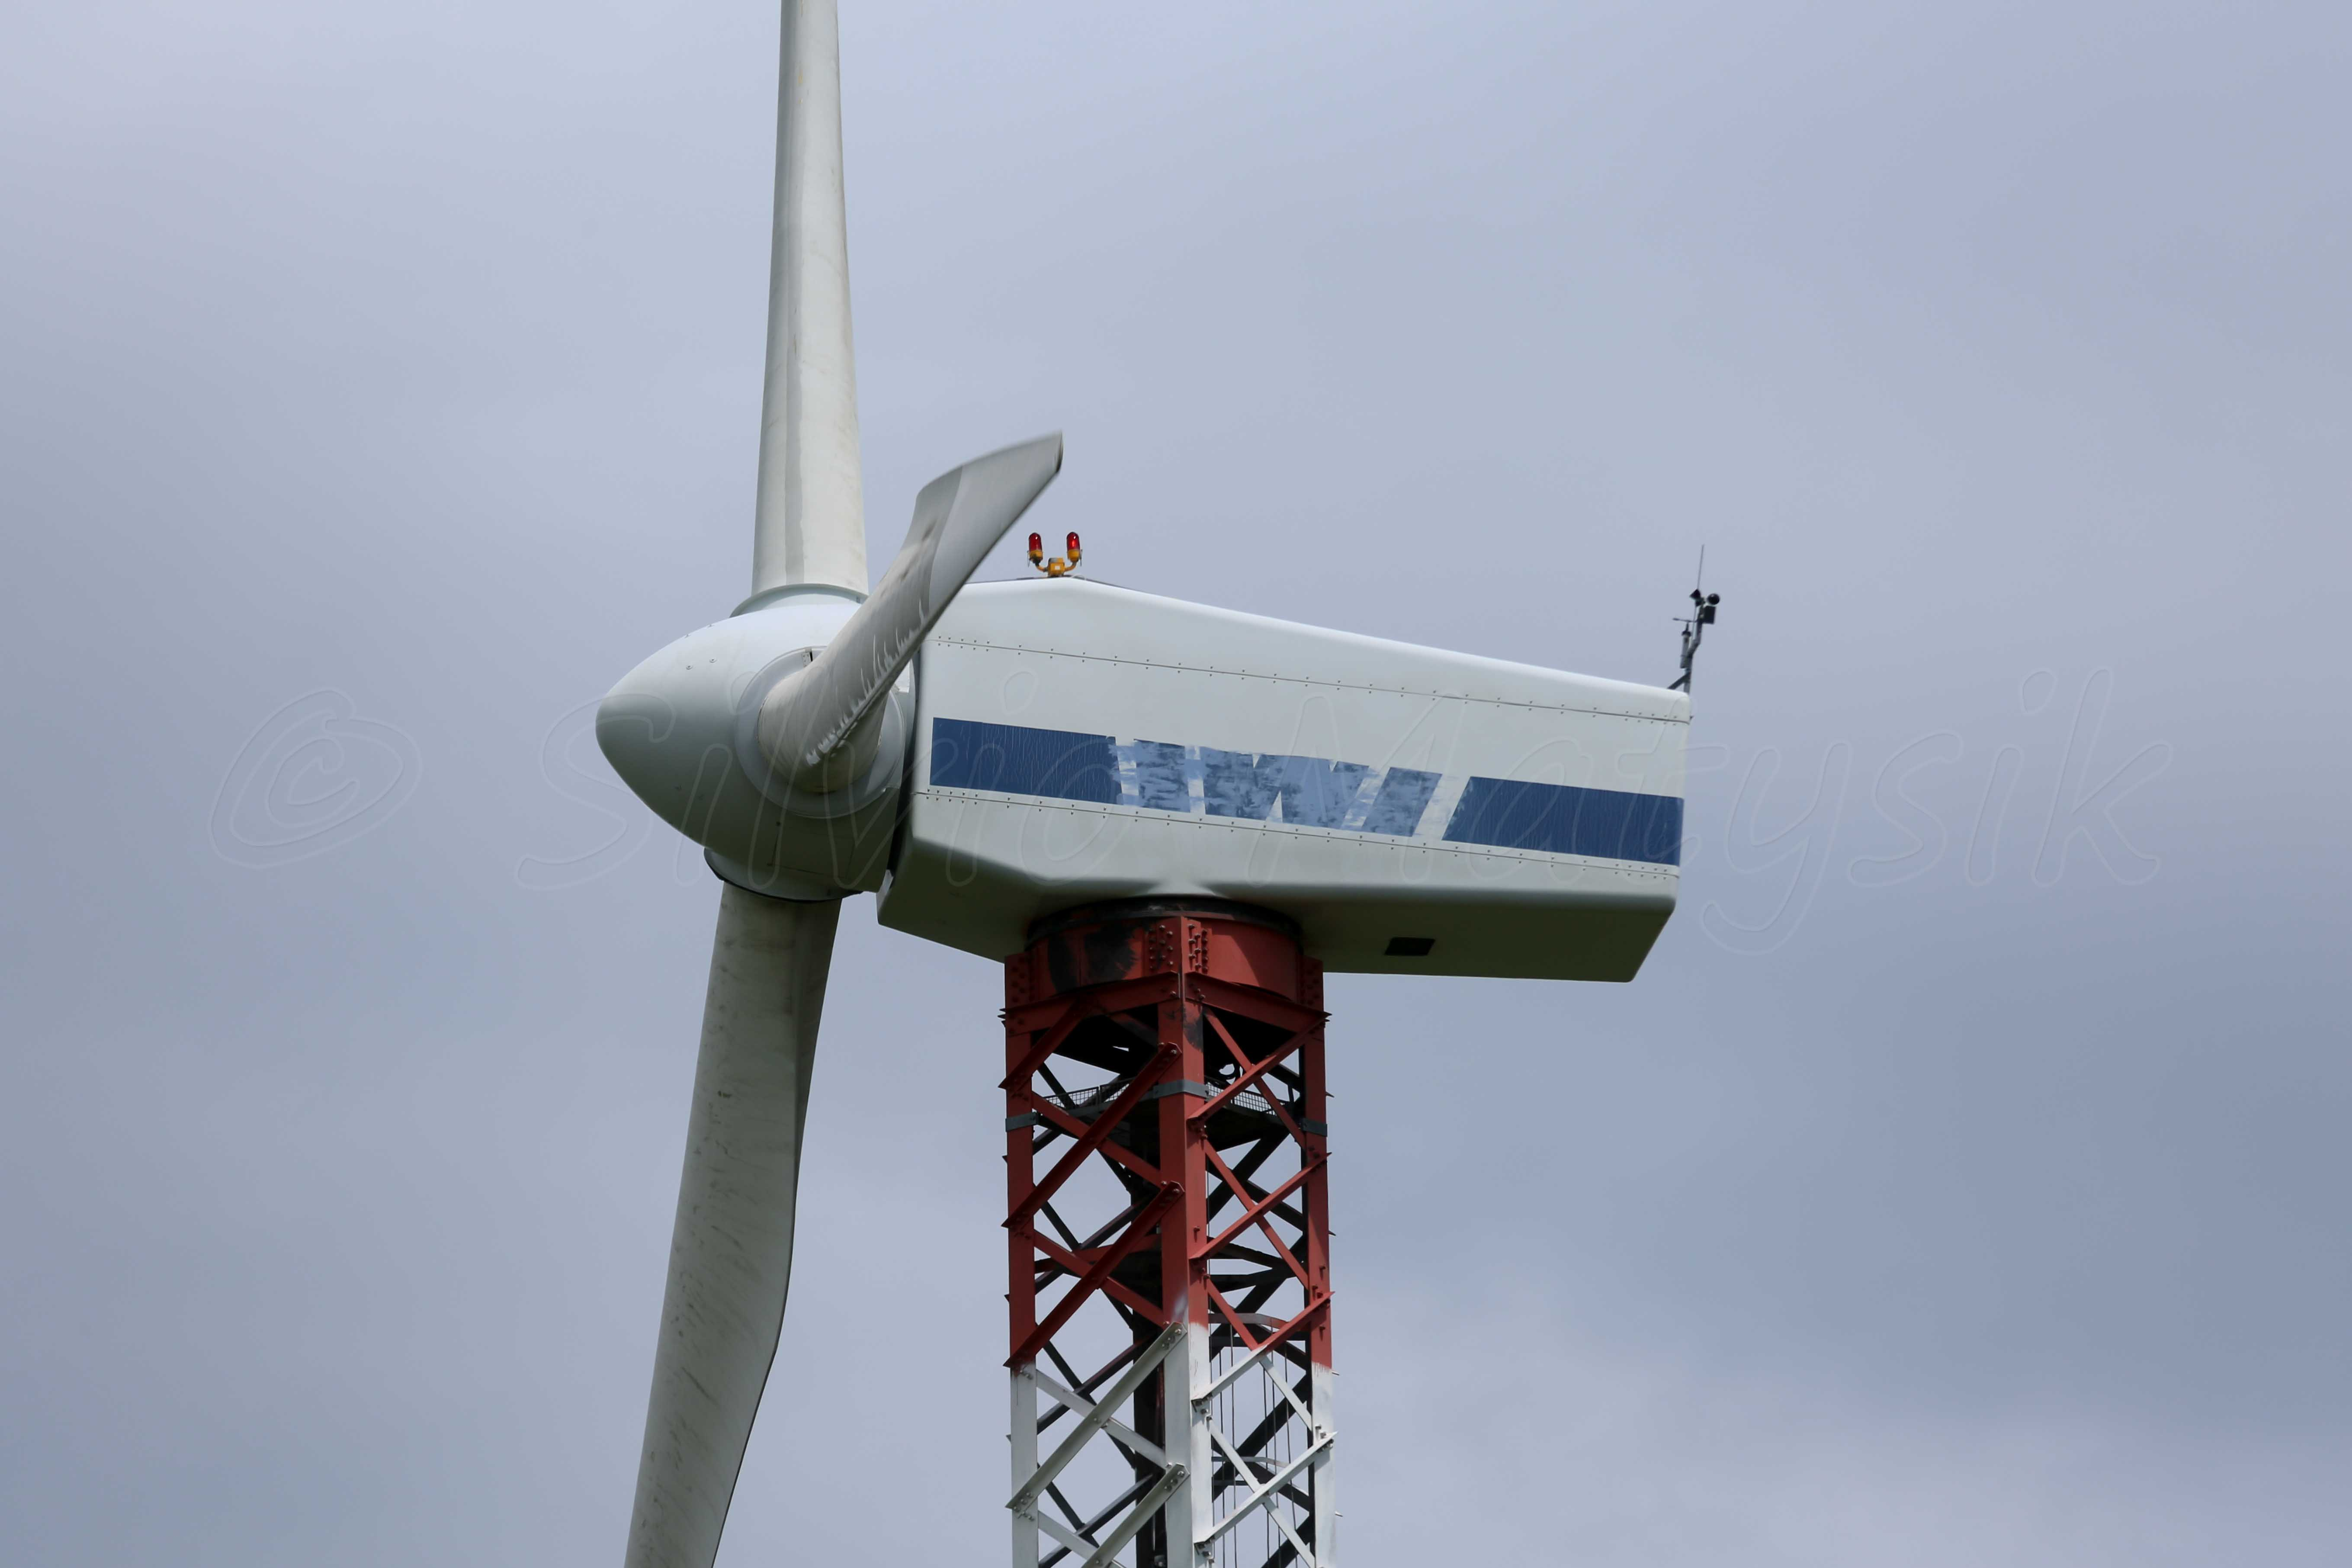 IWT V47 660 00 kW Wind turbine